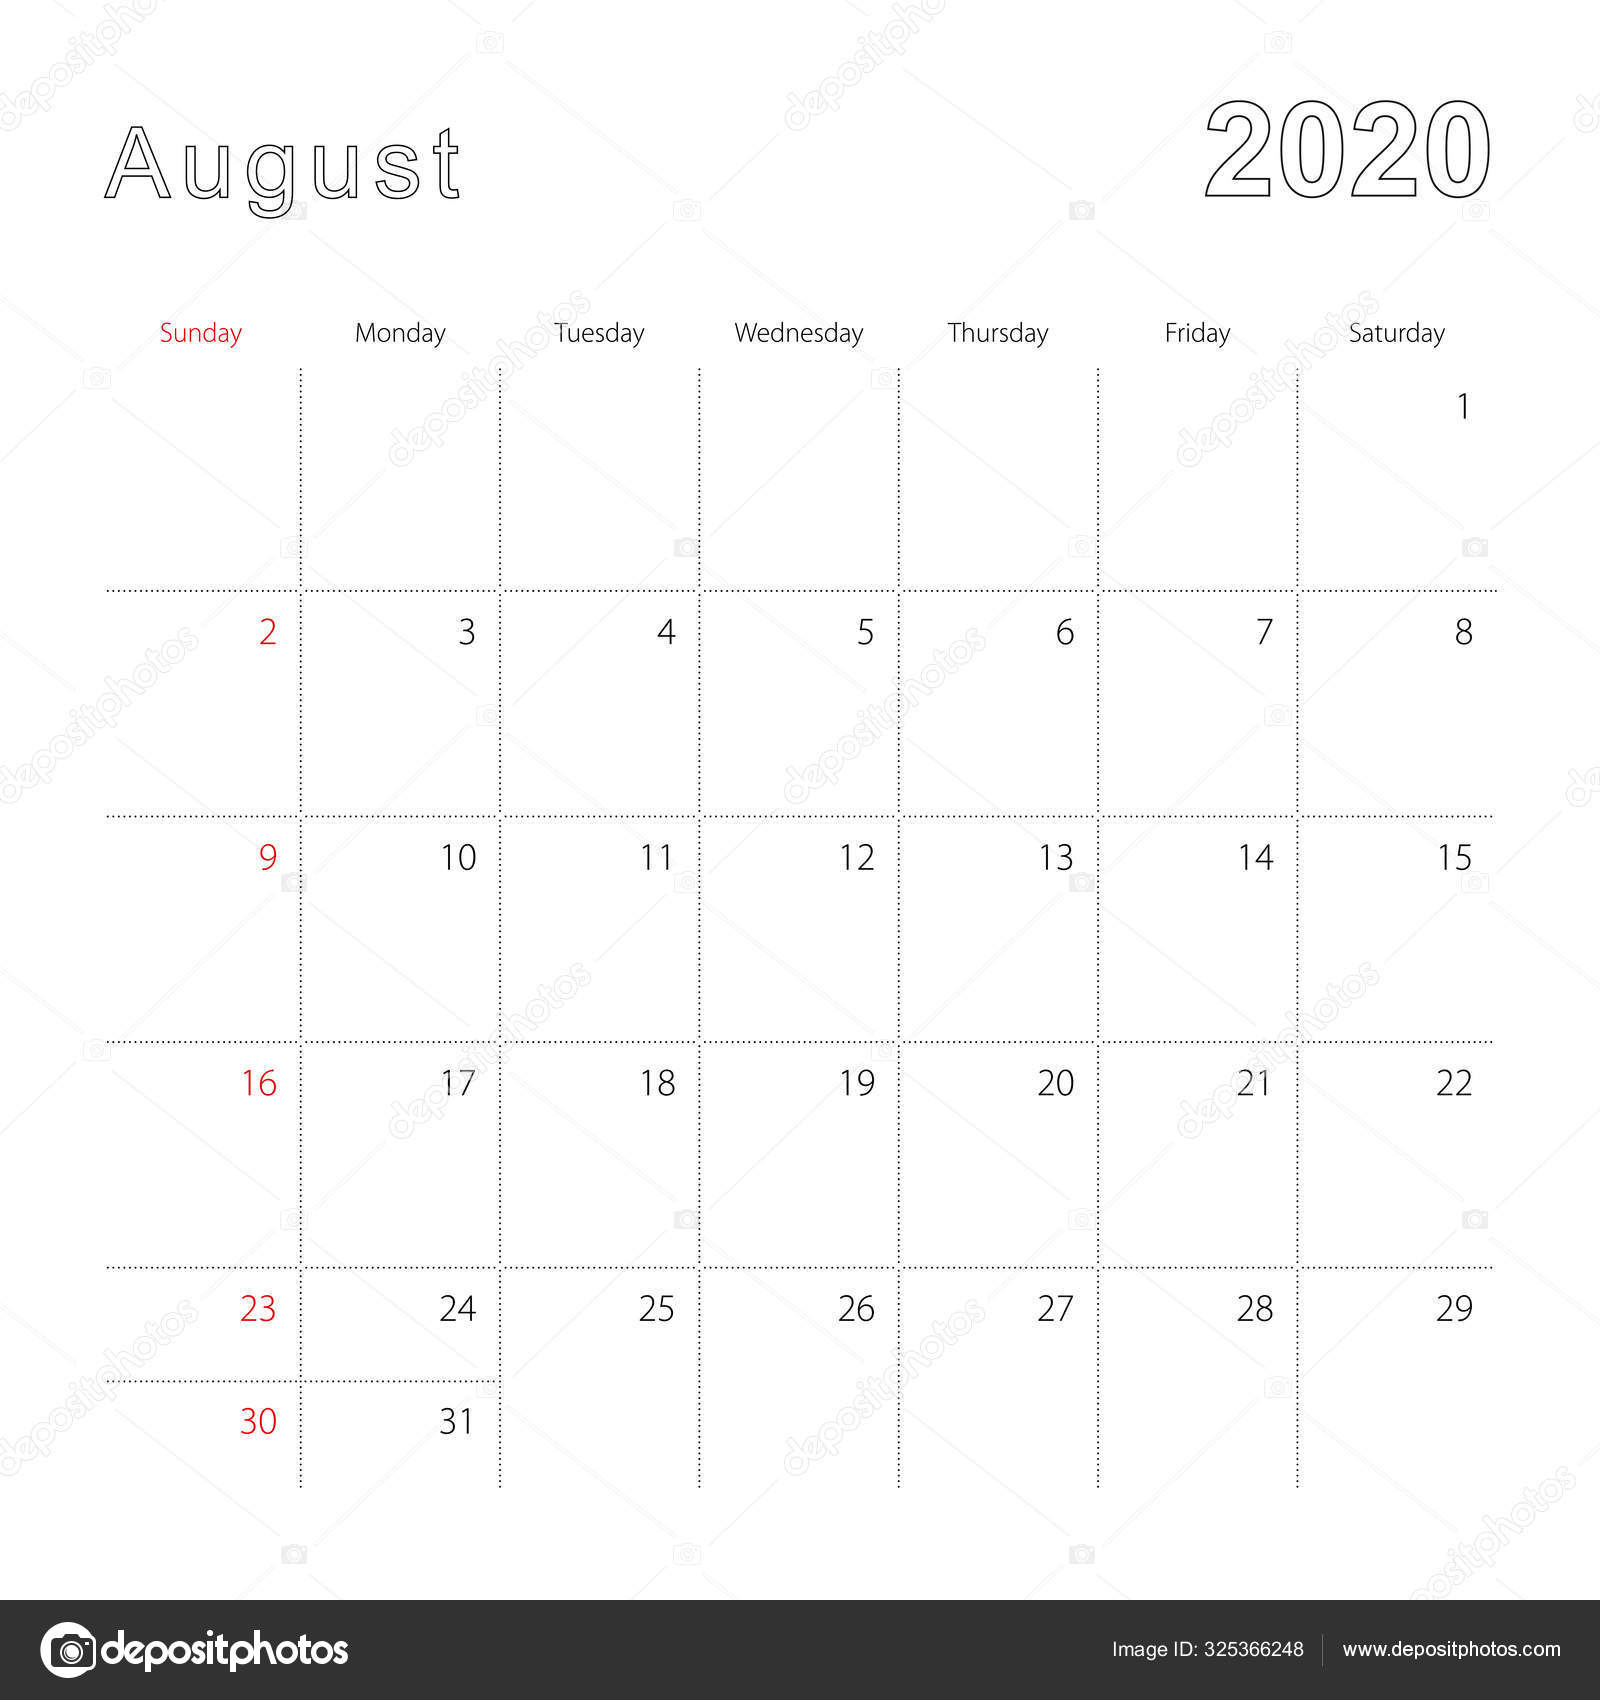 Simple Wall Calendar For August 2020 With Dotted Lines. The with regard to Calendar Template With Lines